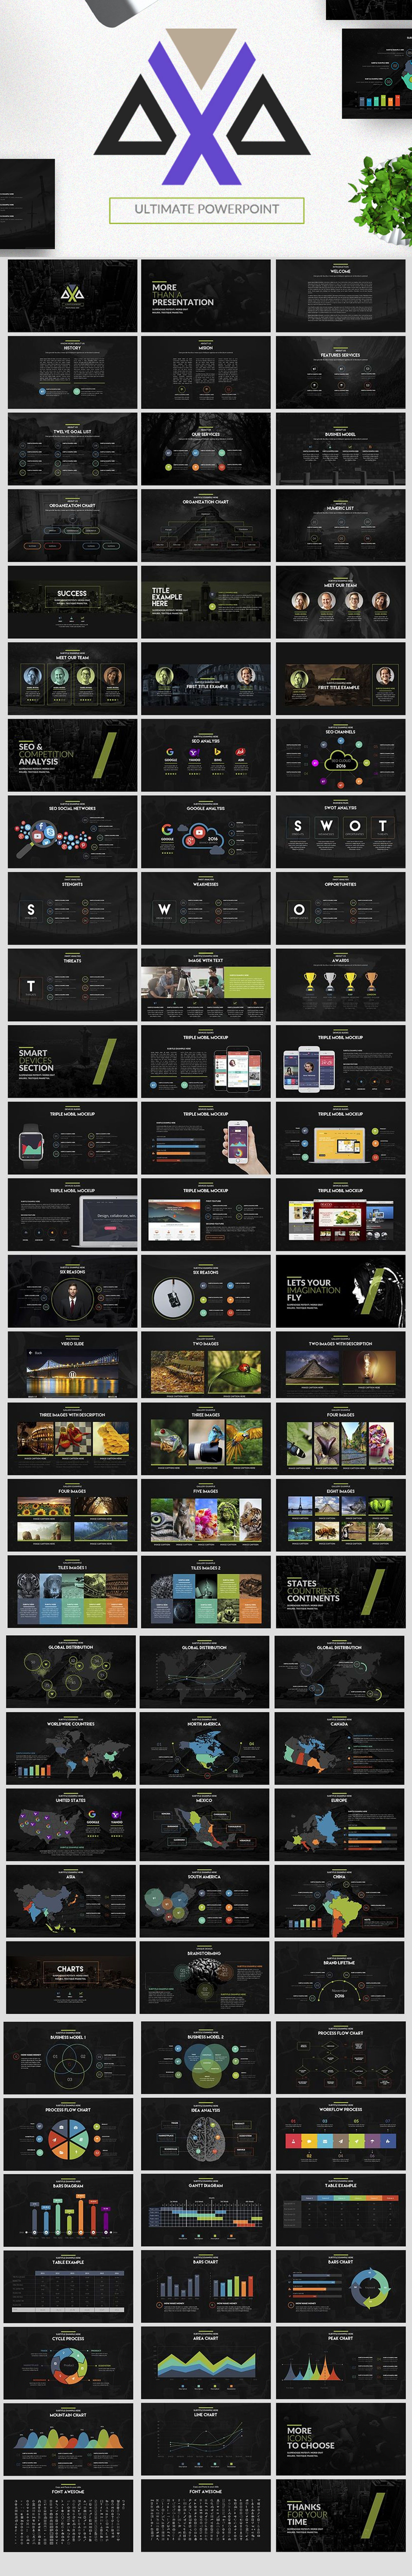 Axa - Powerpoint Presentation Template | Marketing Powerpoint ...